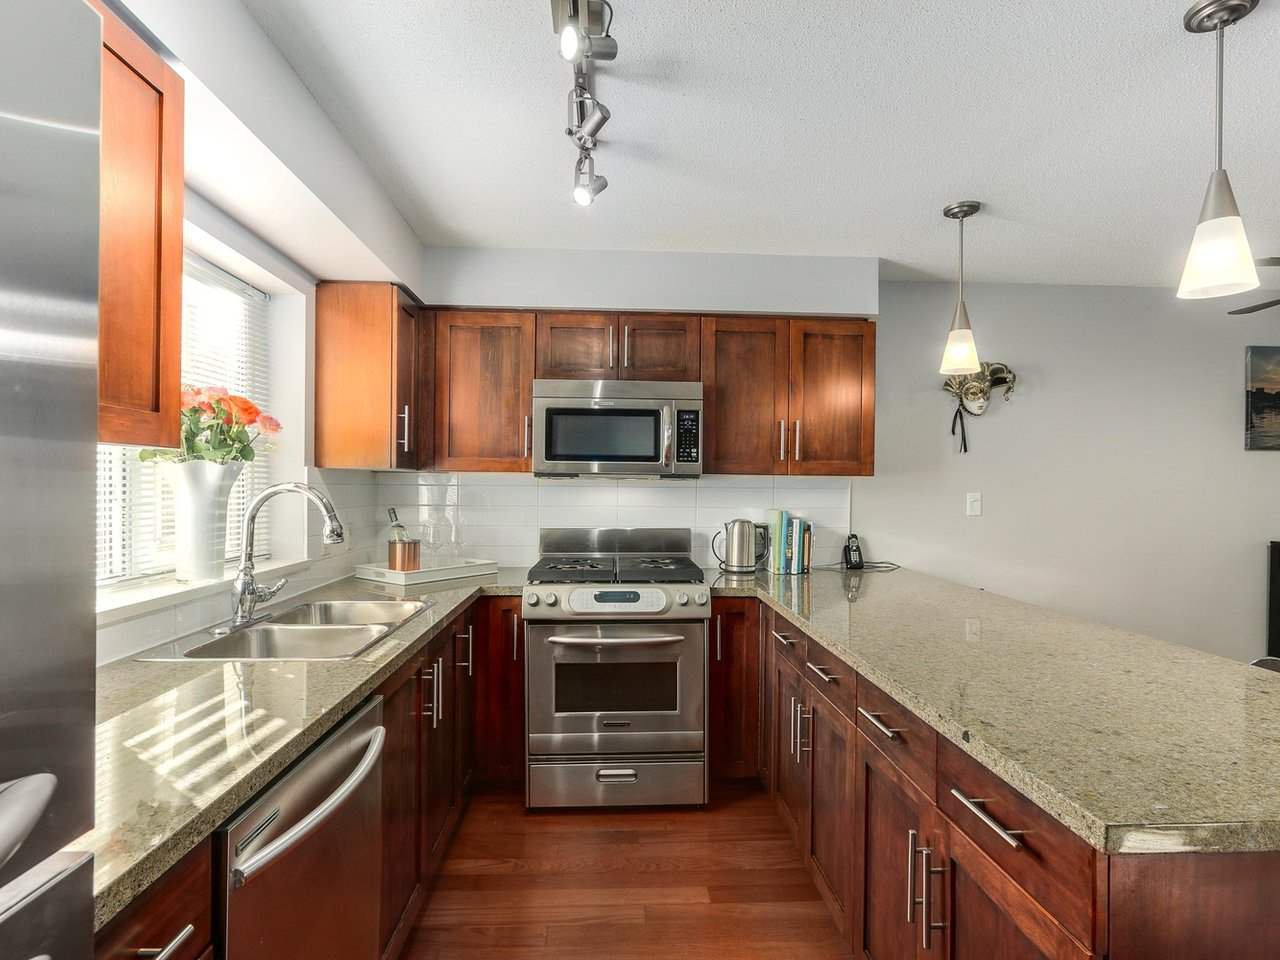 Photo 10: Photos: 119 672 W 6TH AVENUE in Vancouver: Fairview VW Townhouse for sale (Vancouver West)  : MLS®# R2401186